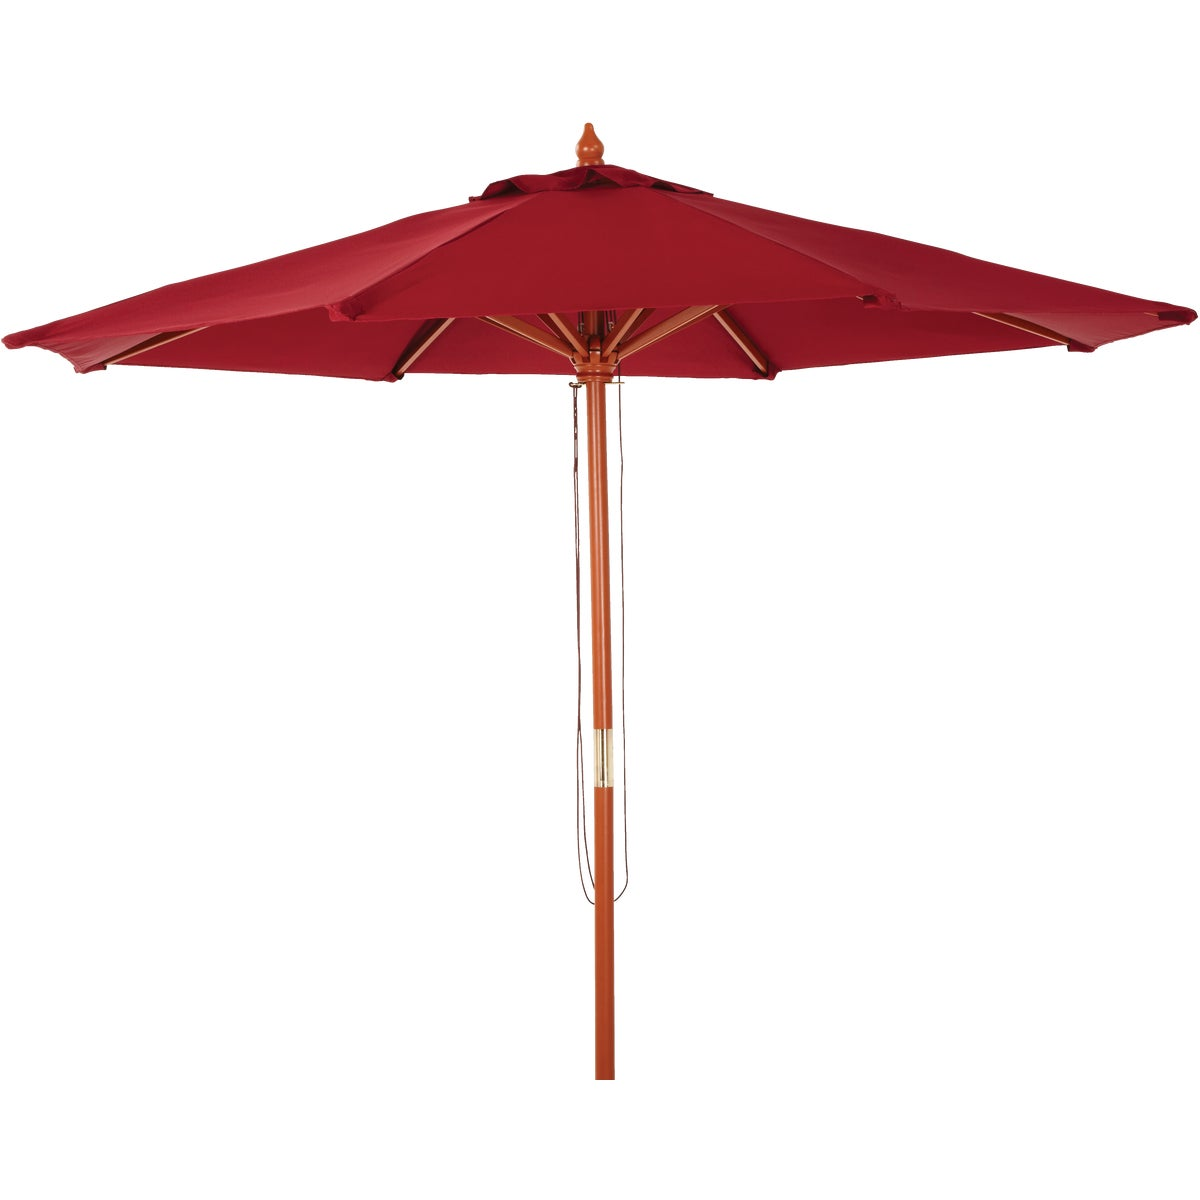 9' MKT BURGUNDY UMBRELLA - TJWU-003A-270-BRG by Do it Best